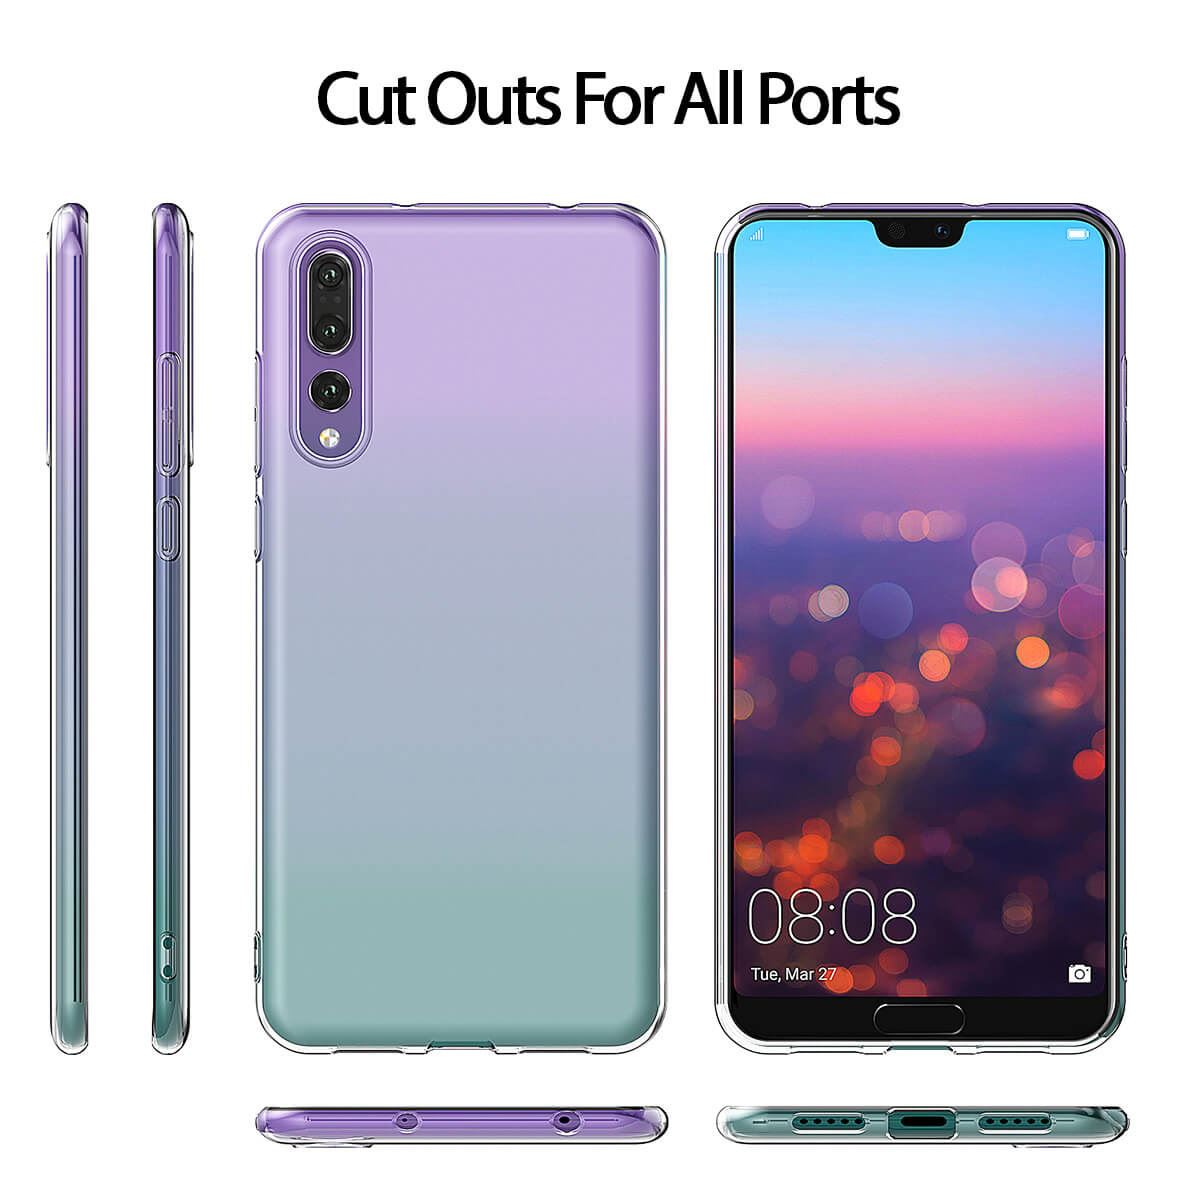 Shockproof-Silicone-Protective-Clear-Gel-Cover-Case-For-Huawei-P20-Pro-P-Smart thumbnail 45